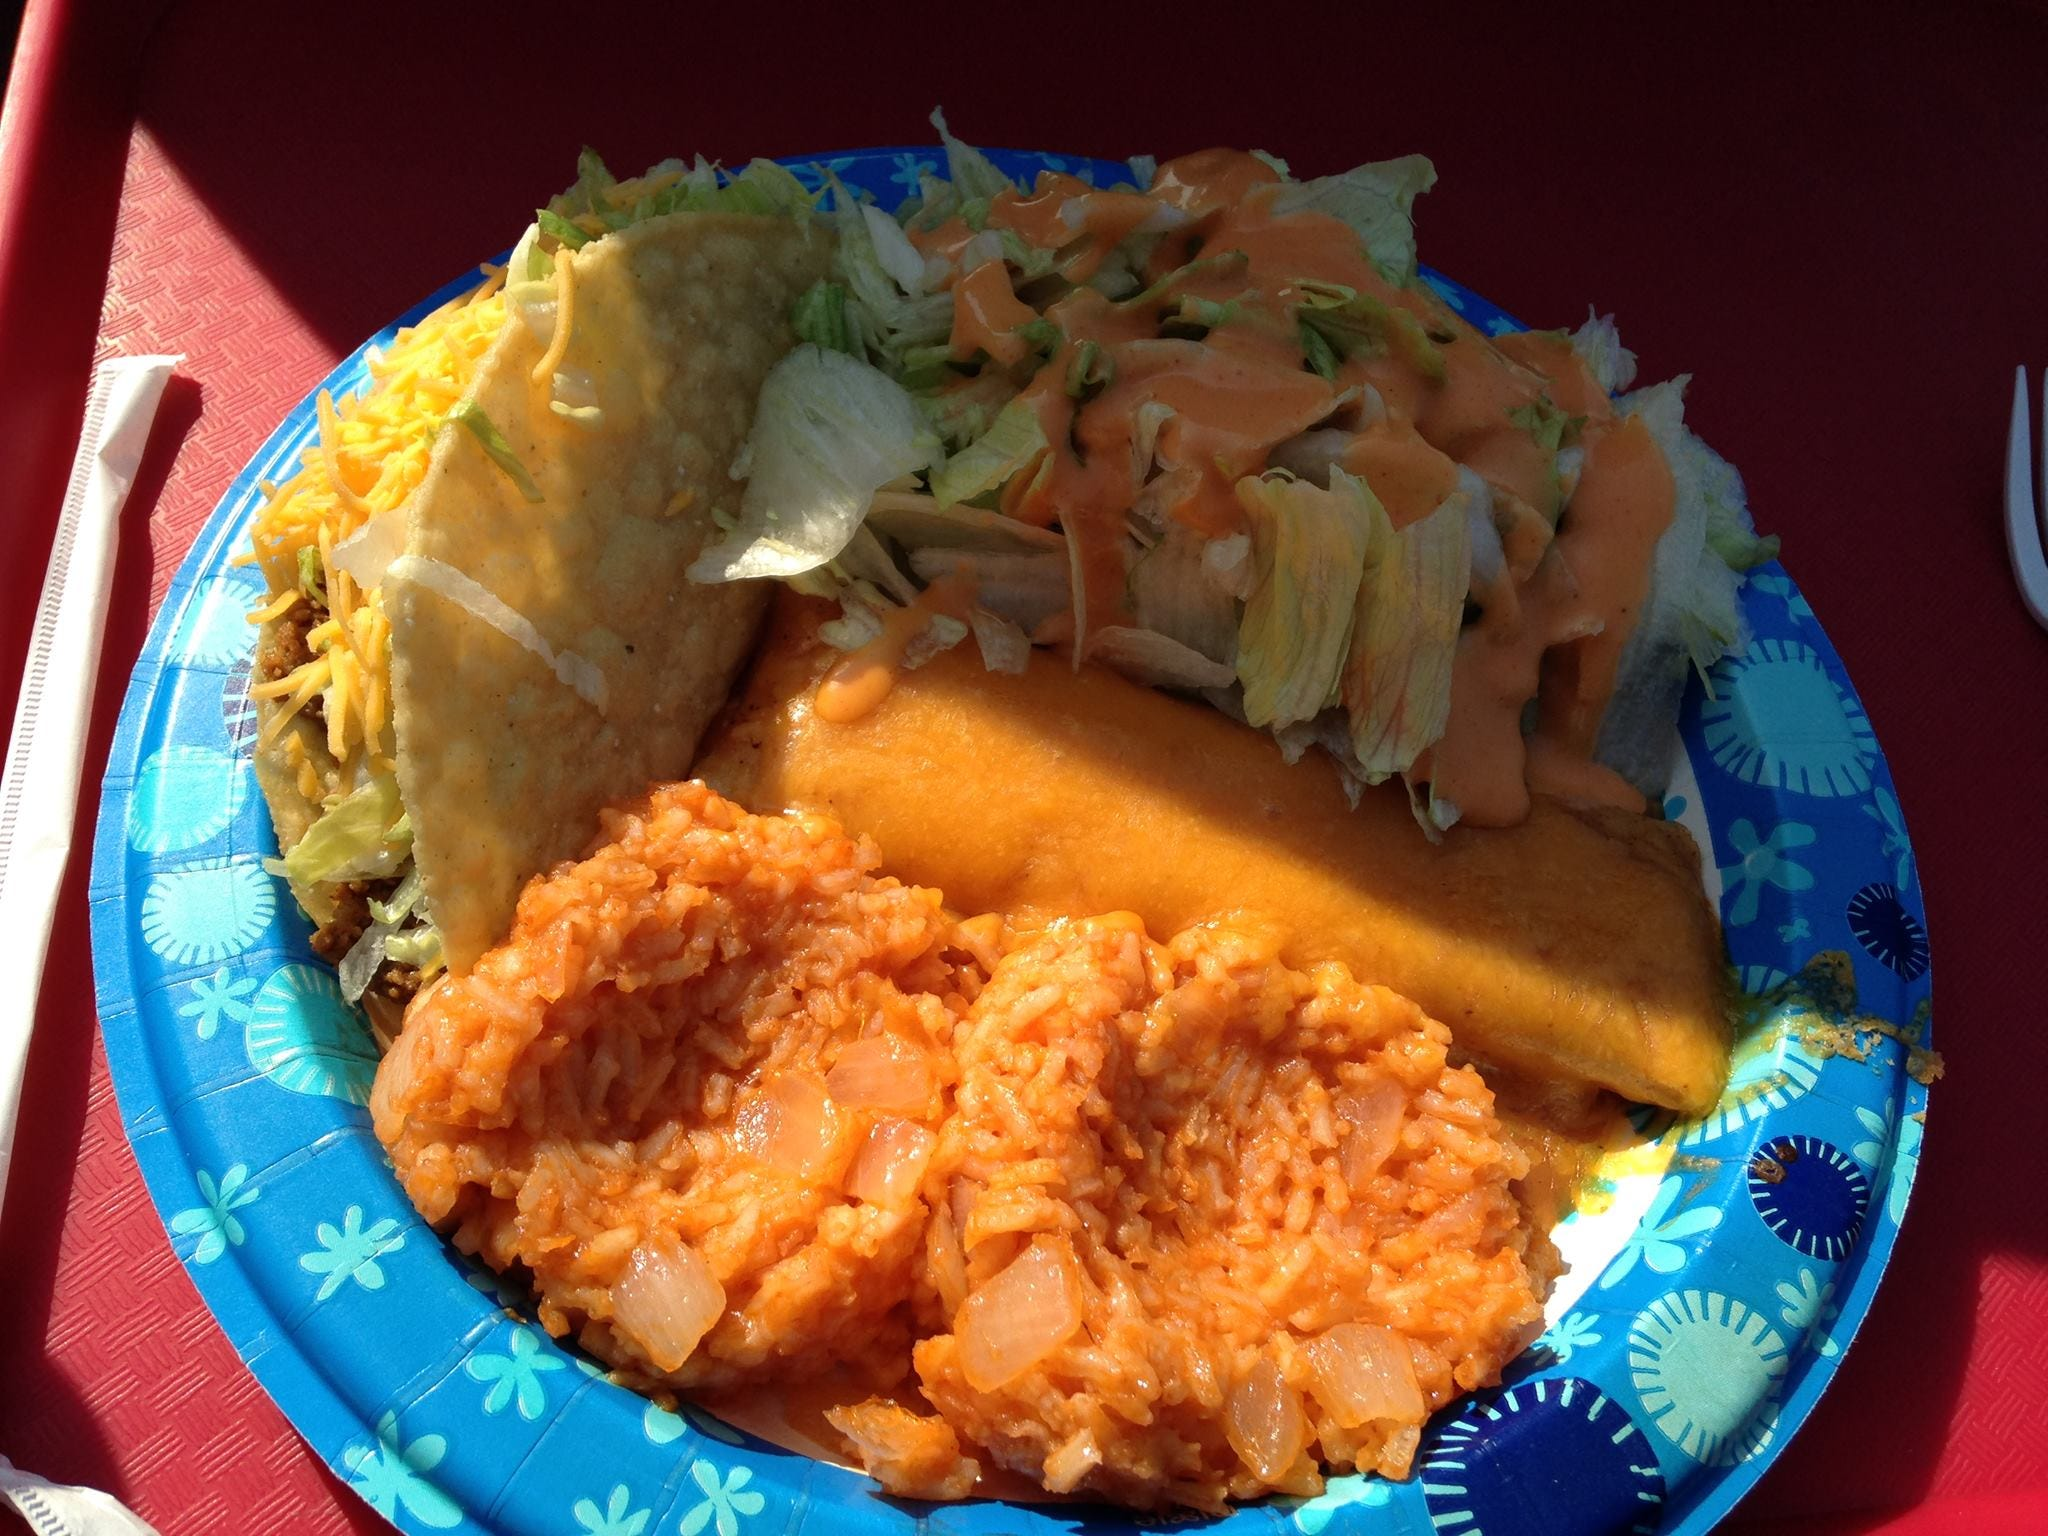 Taco House in Traverse City is considered by Karen Wilcox a tasty alternative to Mr. Taco in south Lansing. Karen Wilcox, a Lansing resident, said Taco House's cheese enchiladas taste the same as those from Mr. Taco.